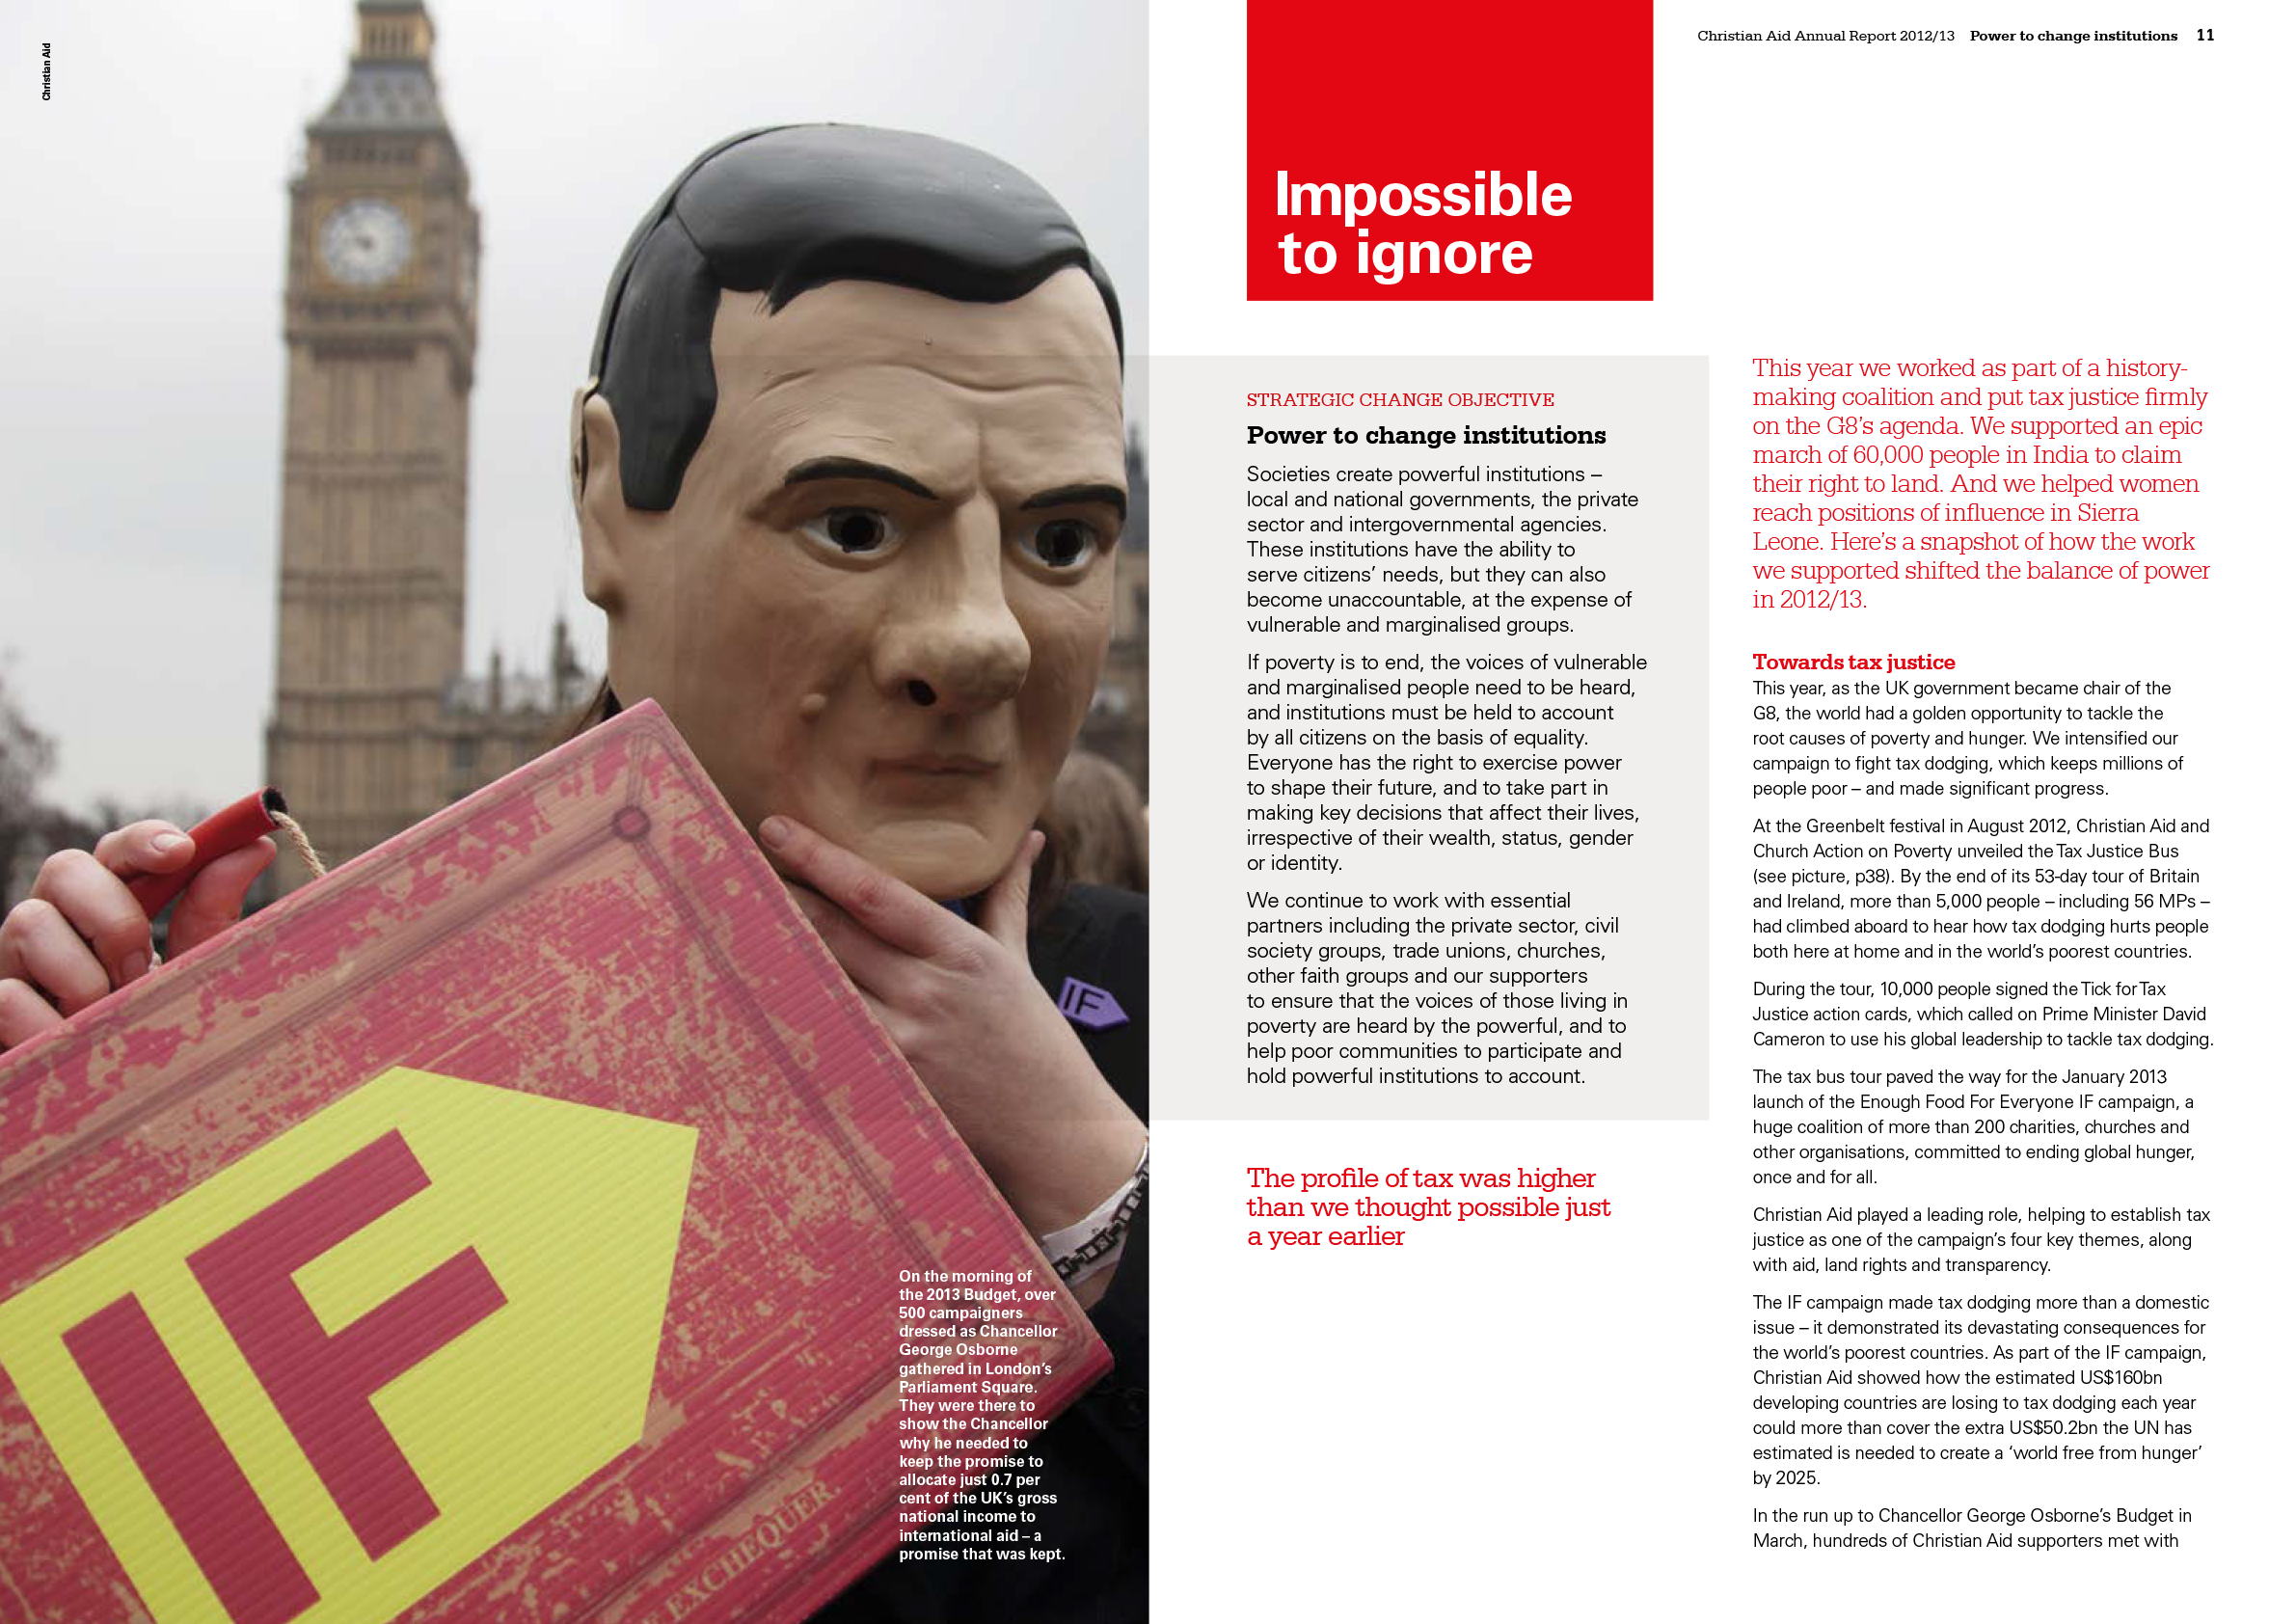 2012-2013-christian-aid-annual-report-12